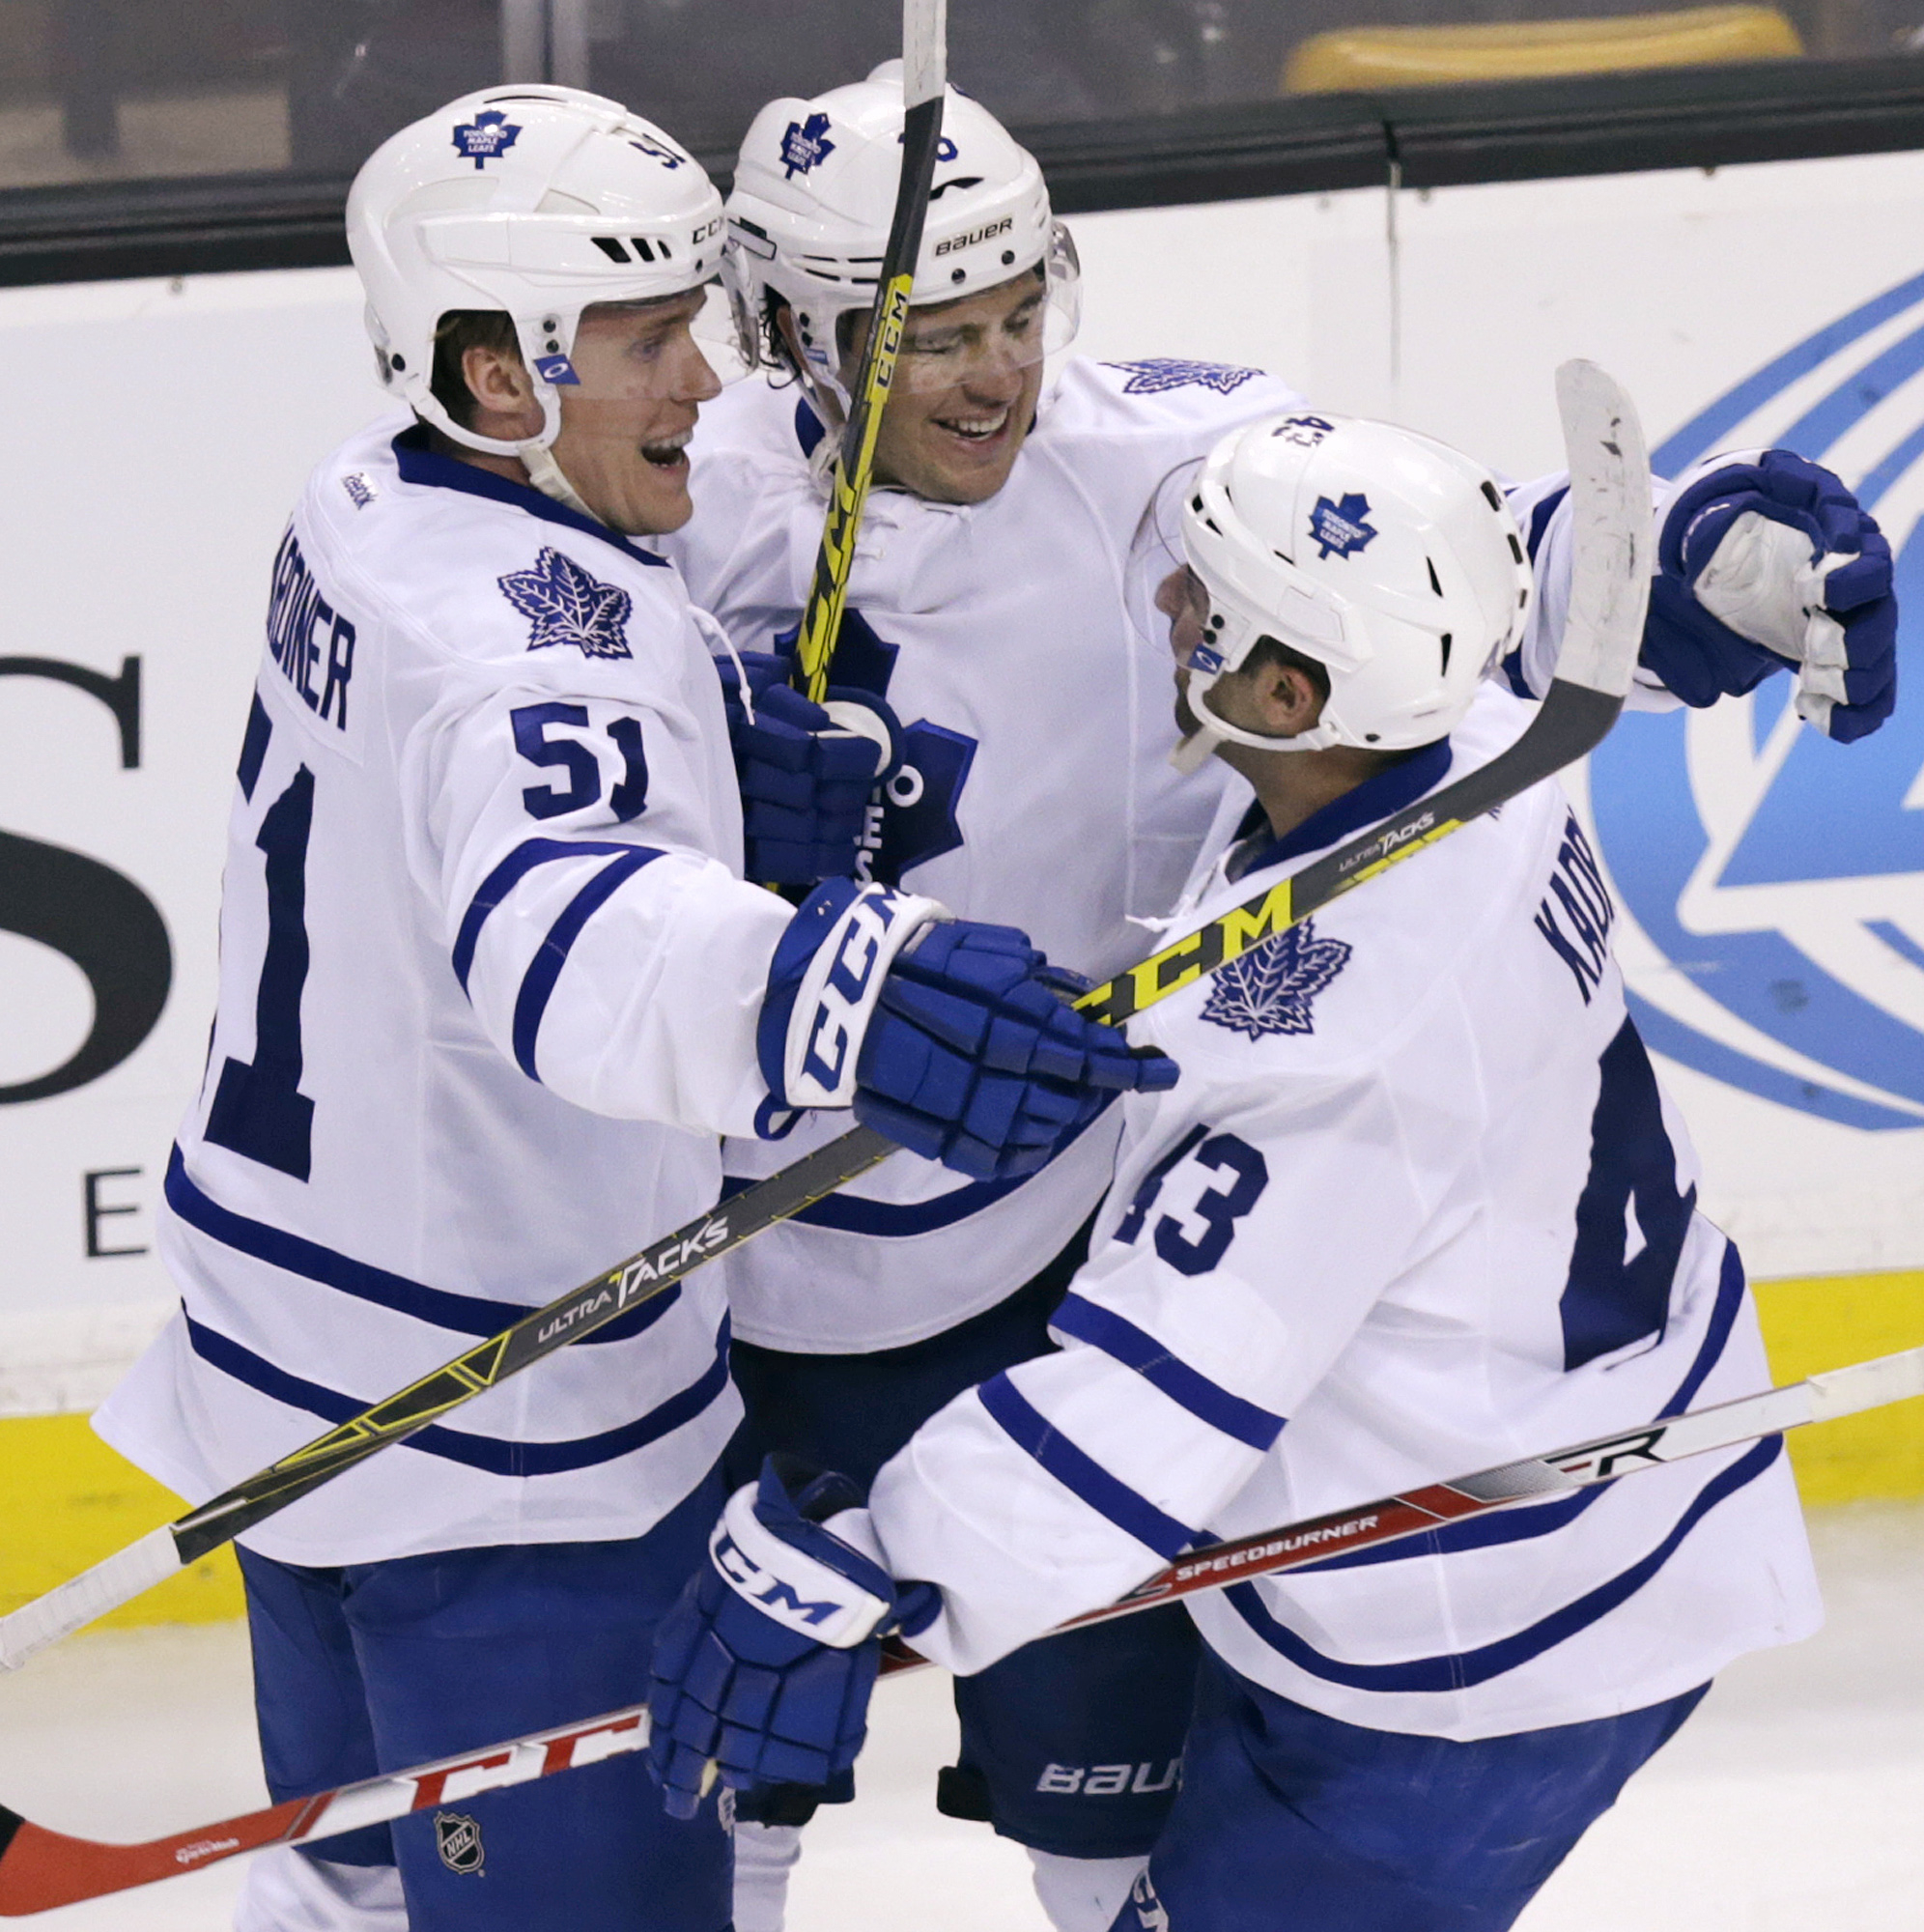 Toronto Maple Leafs right wing P.A. Parenteau, center, is congratulated by Jake Gardiner (51) and Nazem Kadri (43) after his game-winning goal against the Boston Bruins during overtime in an NHL hockey game in Boston, Tuesday, Feb. 2, 2016. Toronto defeat